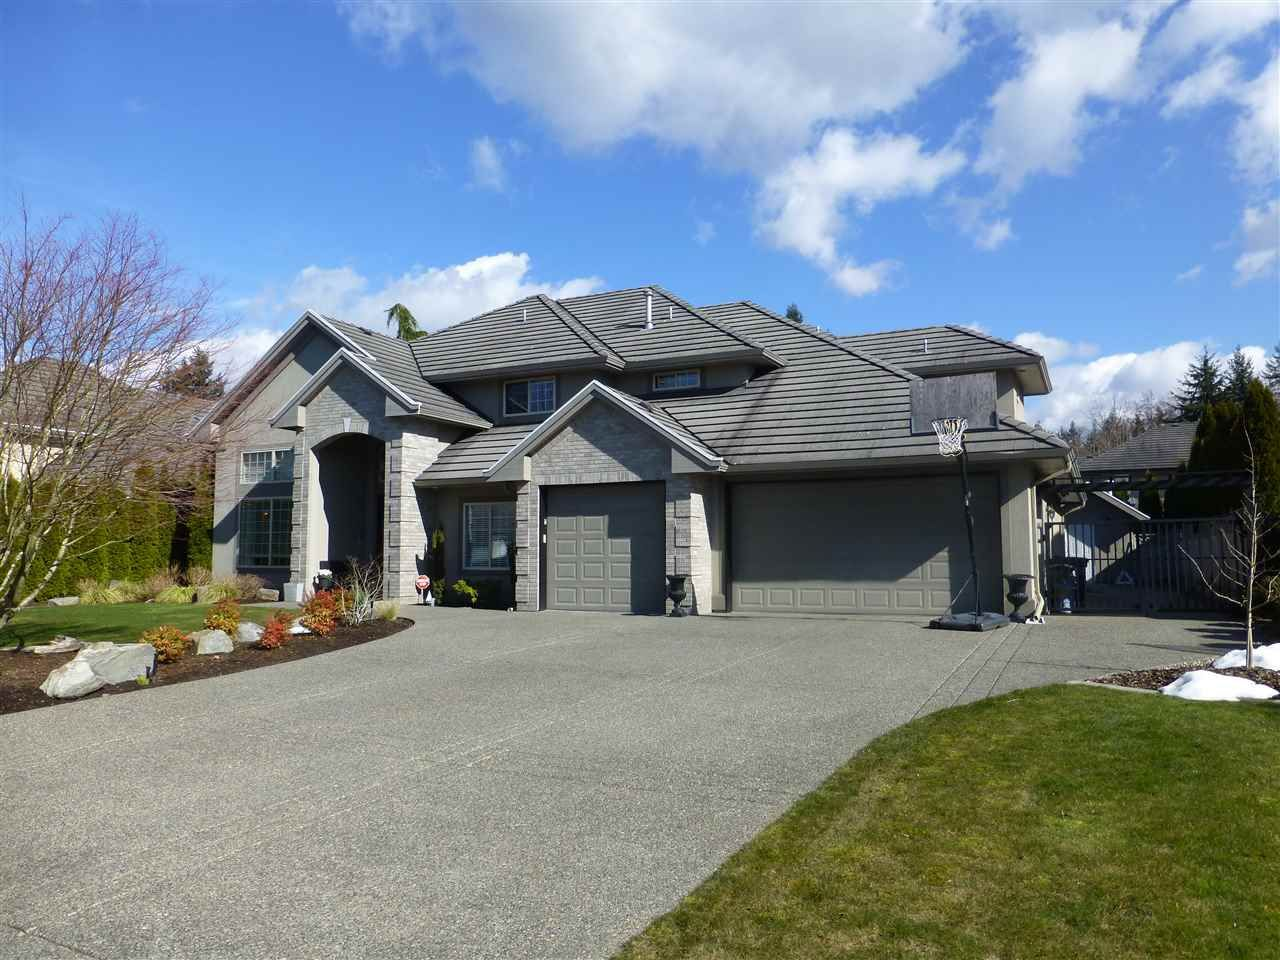 """Main Photo: 2132 139A Street in Surrey: Elgin Chantrell House for sale in """"CHANTRELL PARK ESTATES"""" (South Surrey White Rock)  : MLS®# R2245345"""